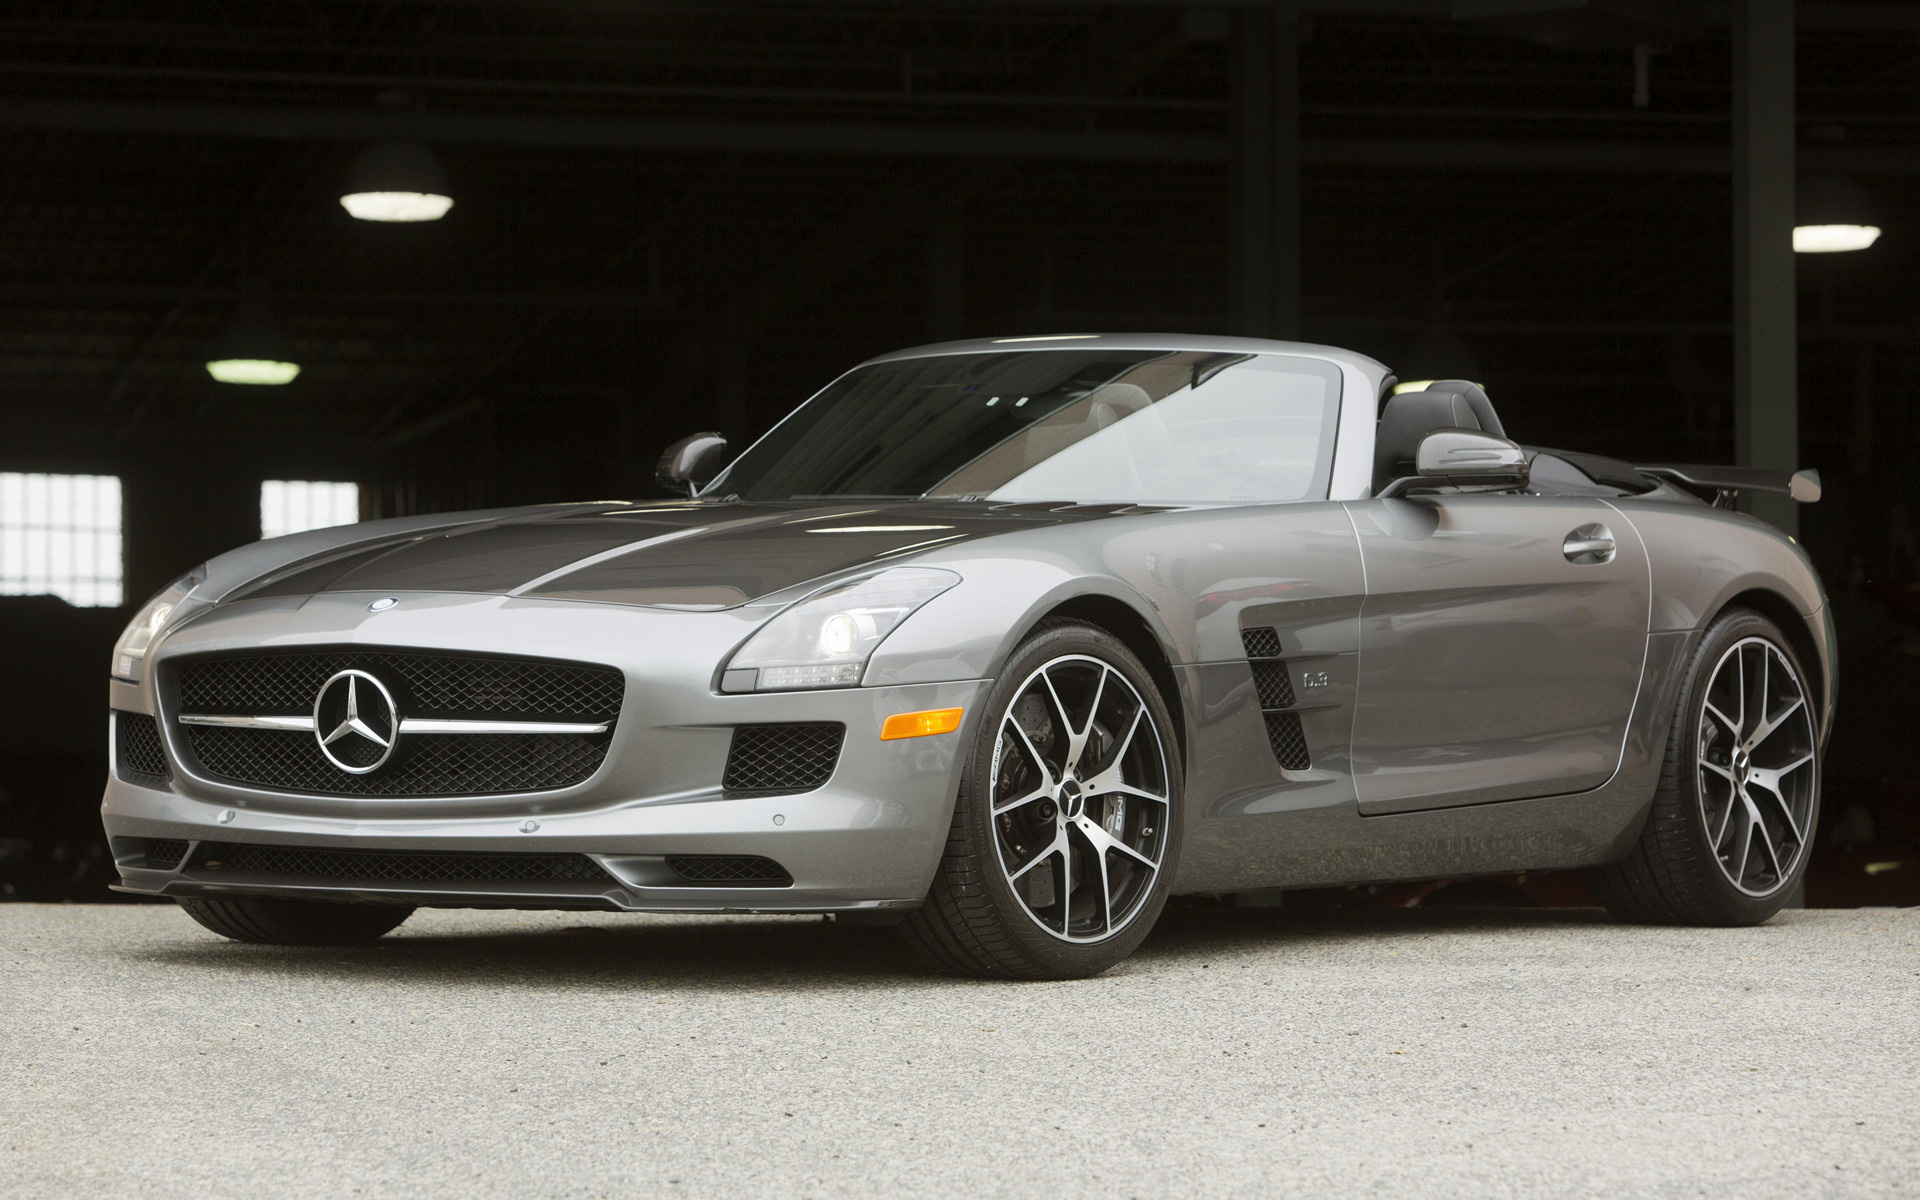 Mercedes Benz Sls Amg Gt Roadster Final Edition 2014 Us